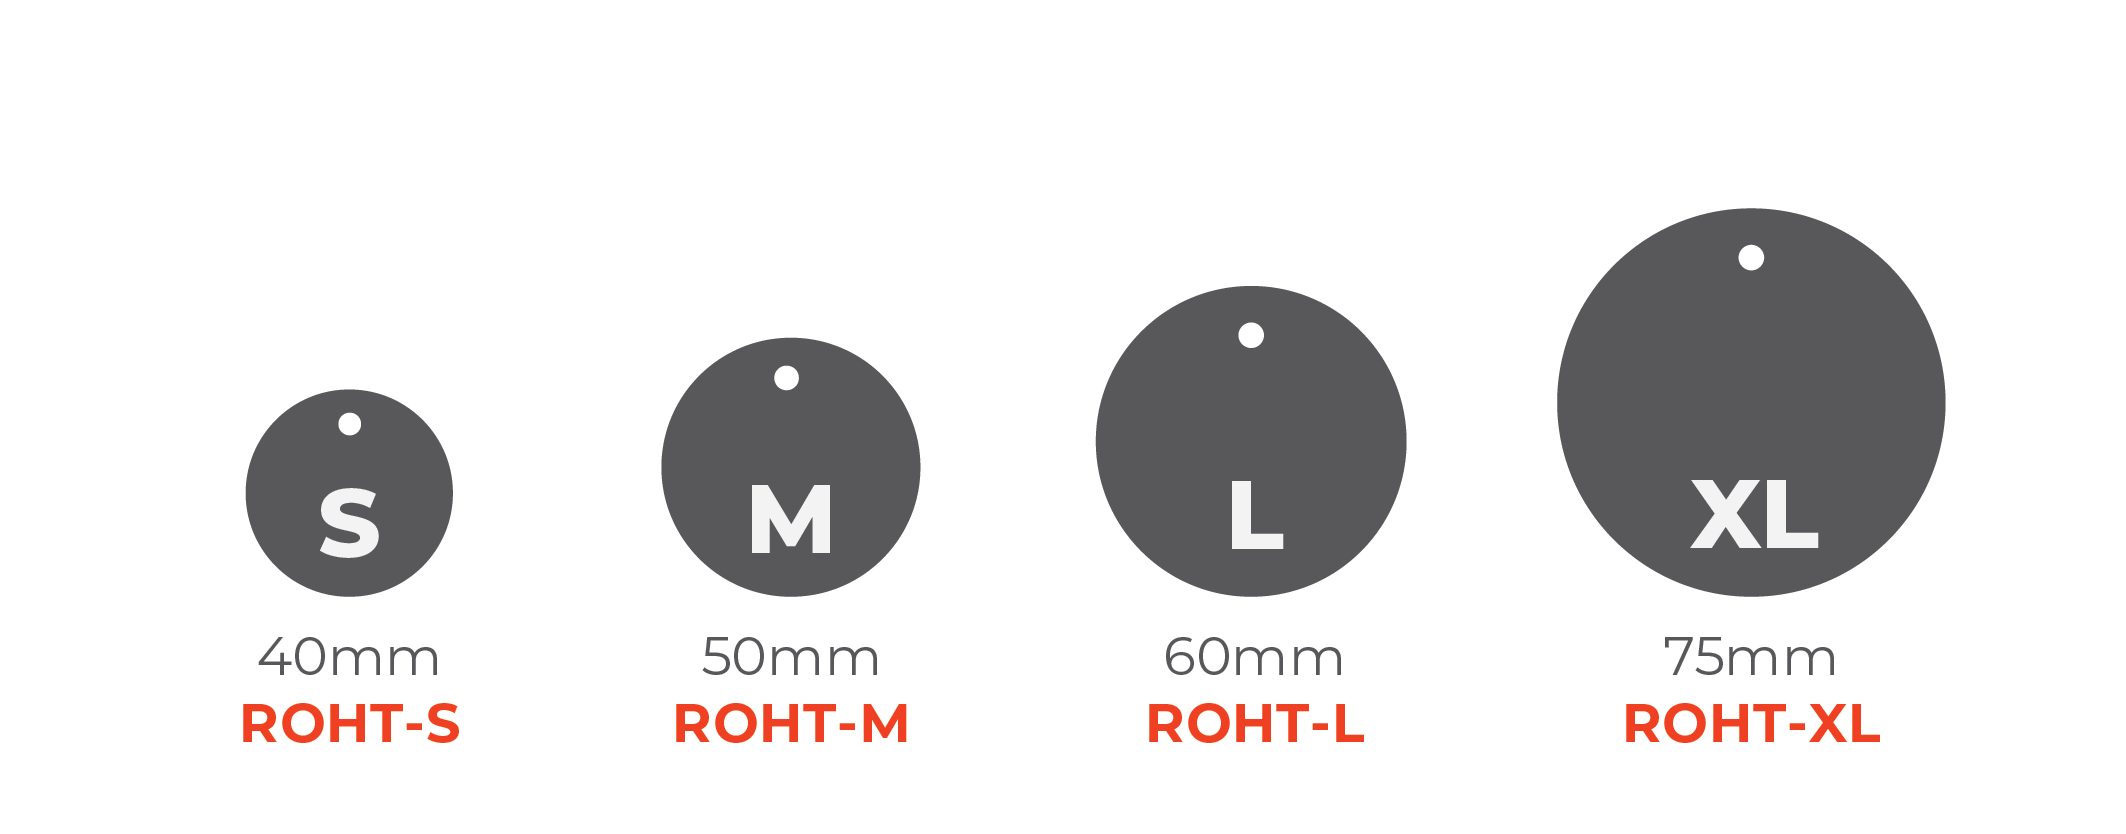 Double Pasted Hang Tags - Round Tags 0x0mm 01 Image